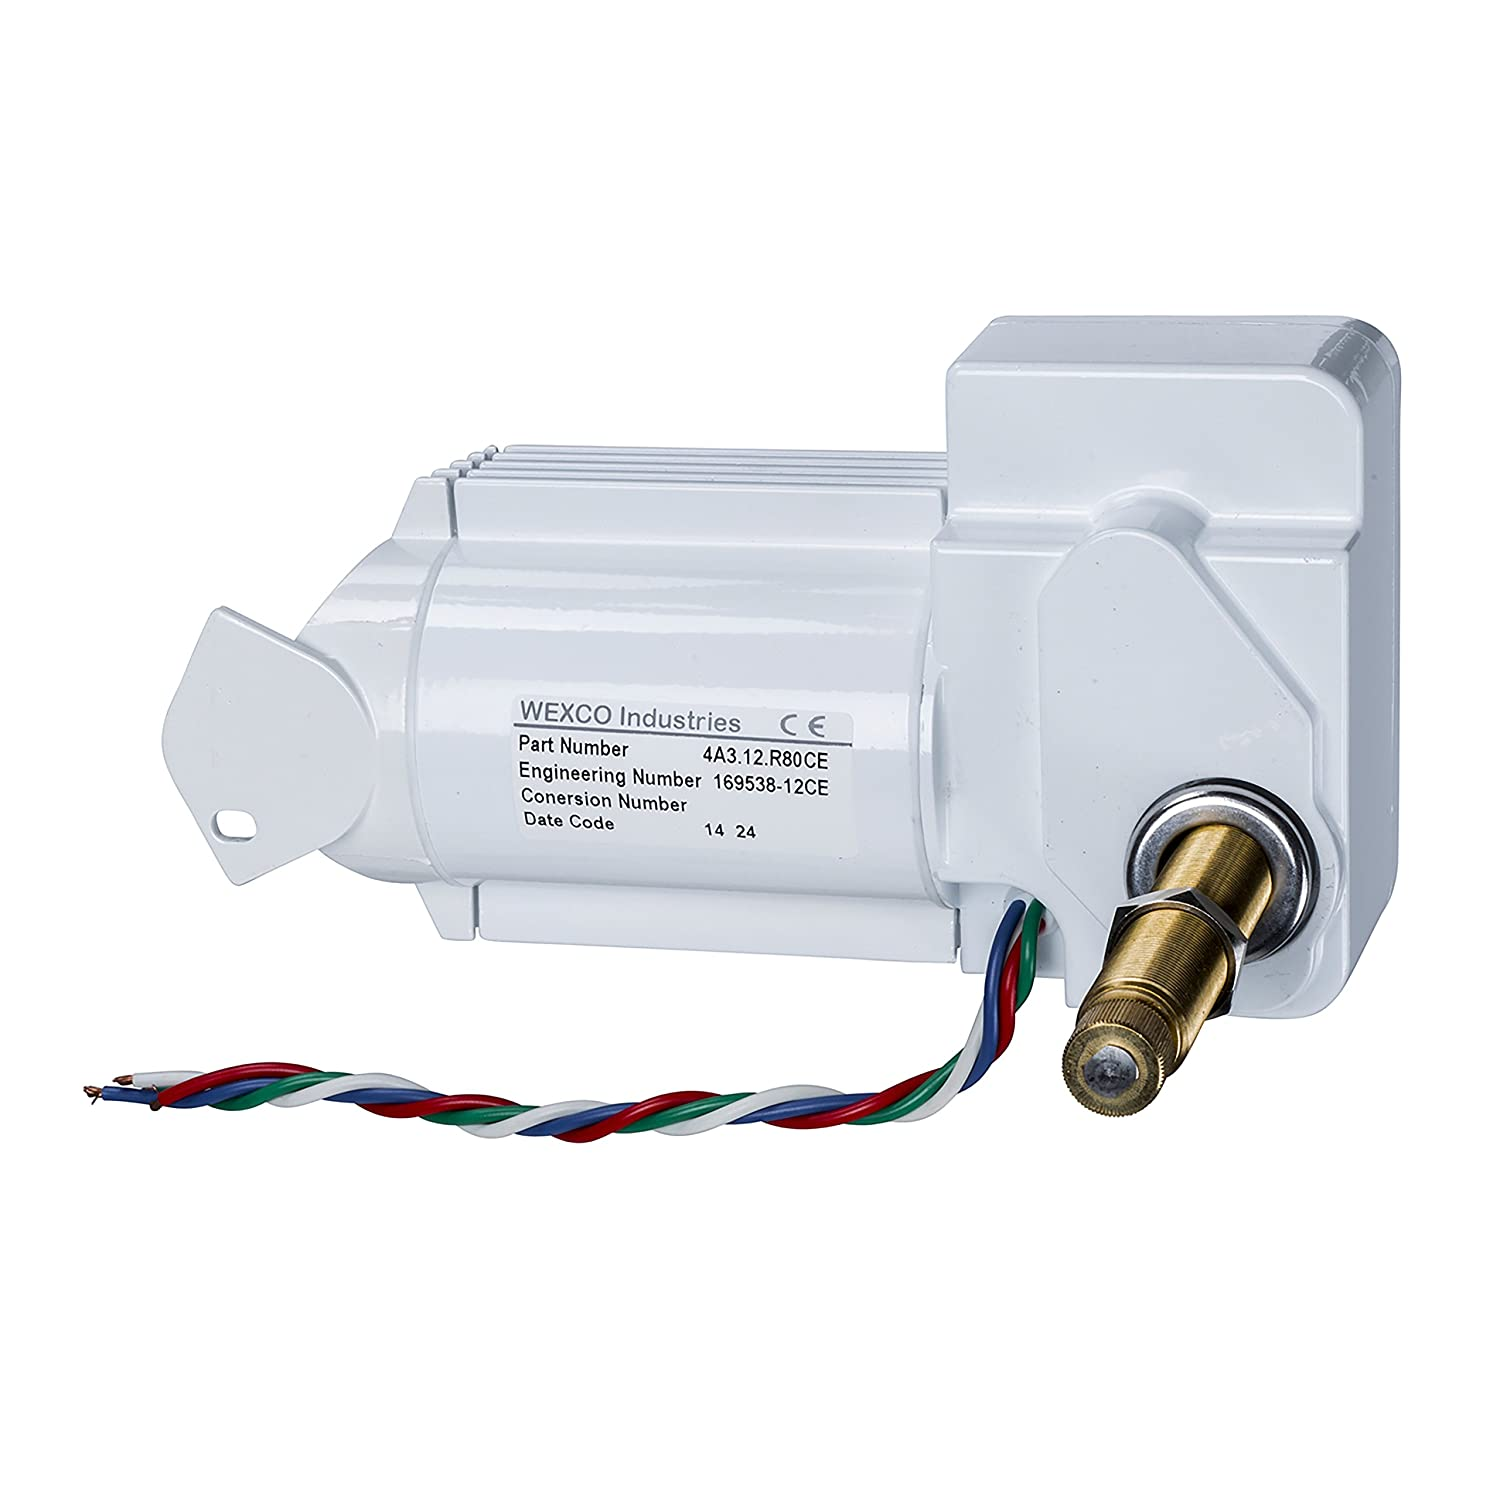 12V shaft Two and a half inch 2.5 Wexco Wiper Motor CE Certified 4A2.12.R110DCE